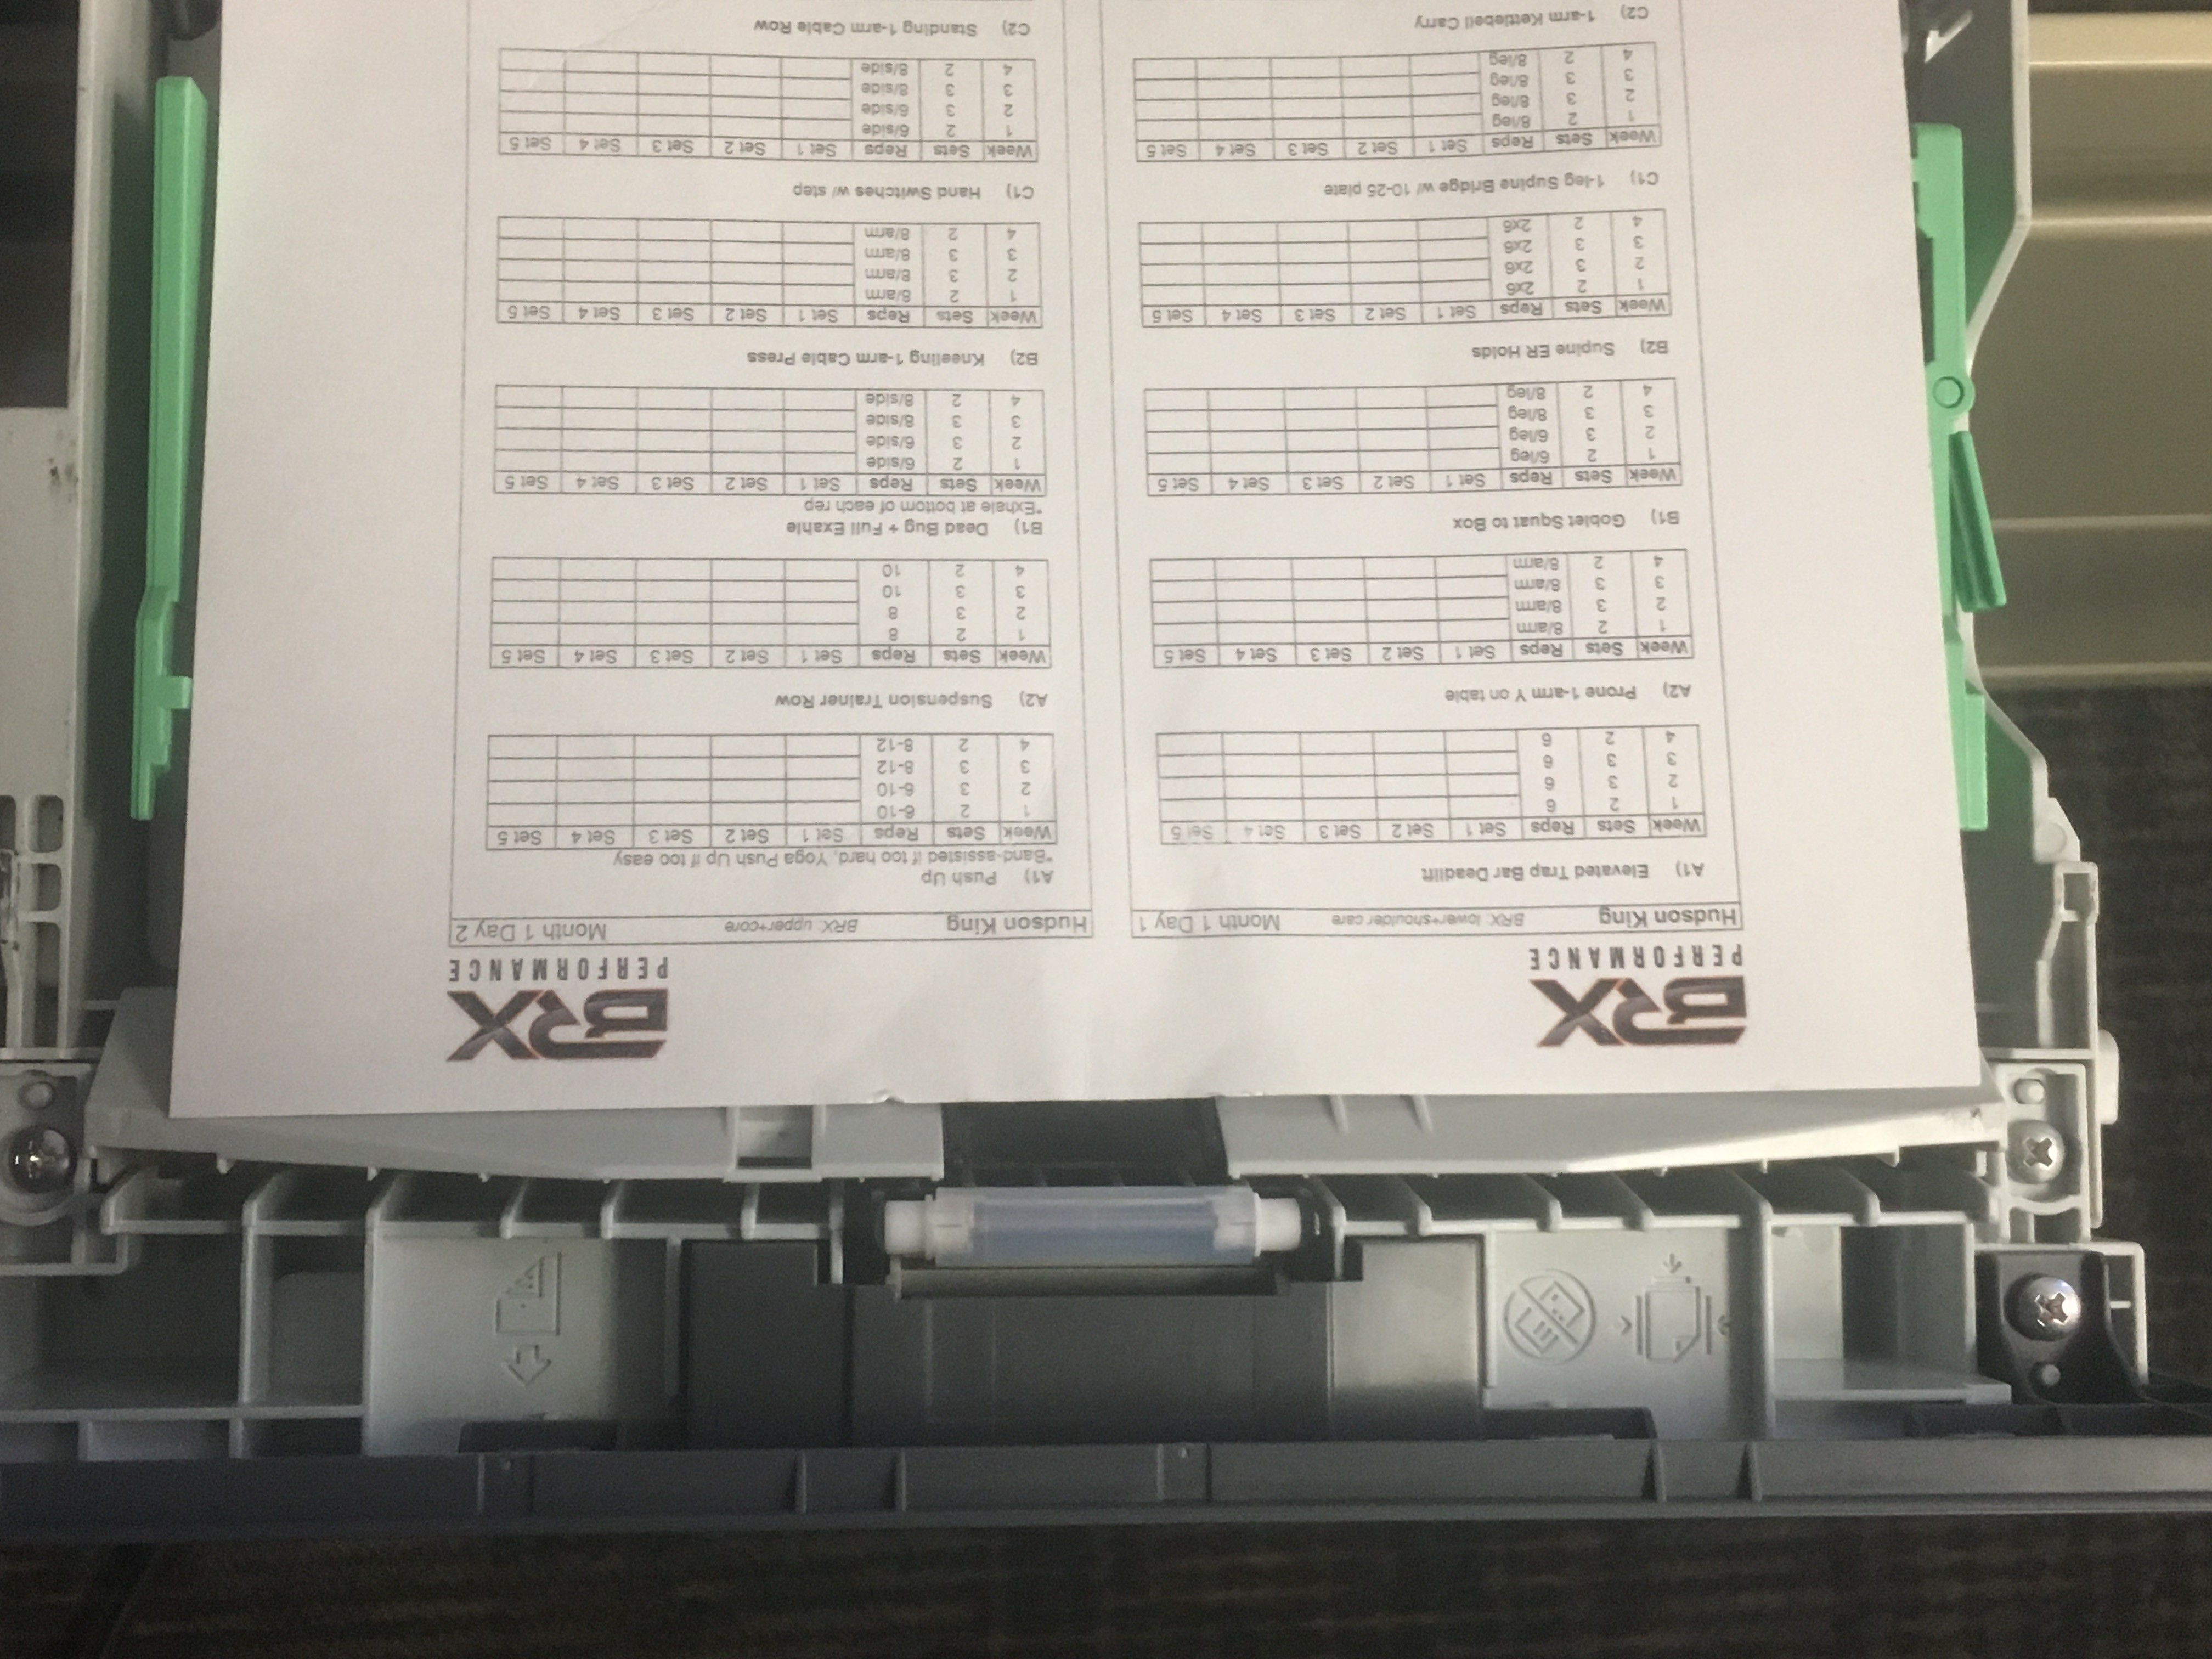 Once the program's day 1&2 side is printed, review for any possible errors. If any errors or questions arise notify the staff member assigned to writing that athlete's program. If there are no errors, print the next tab, which has days 3&4. Place back into printing tray as seen above (logos nearest you).